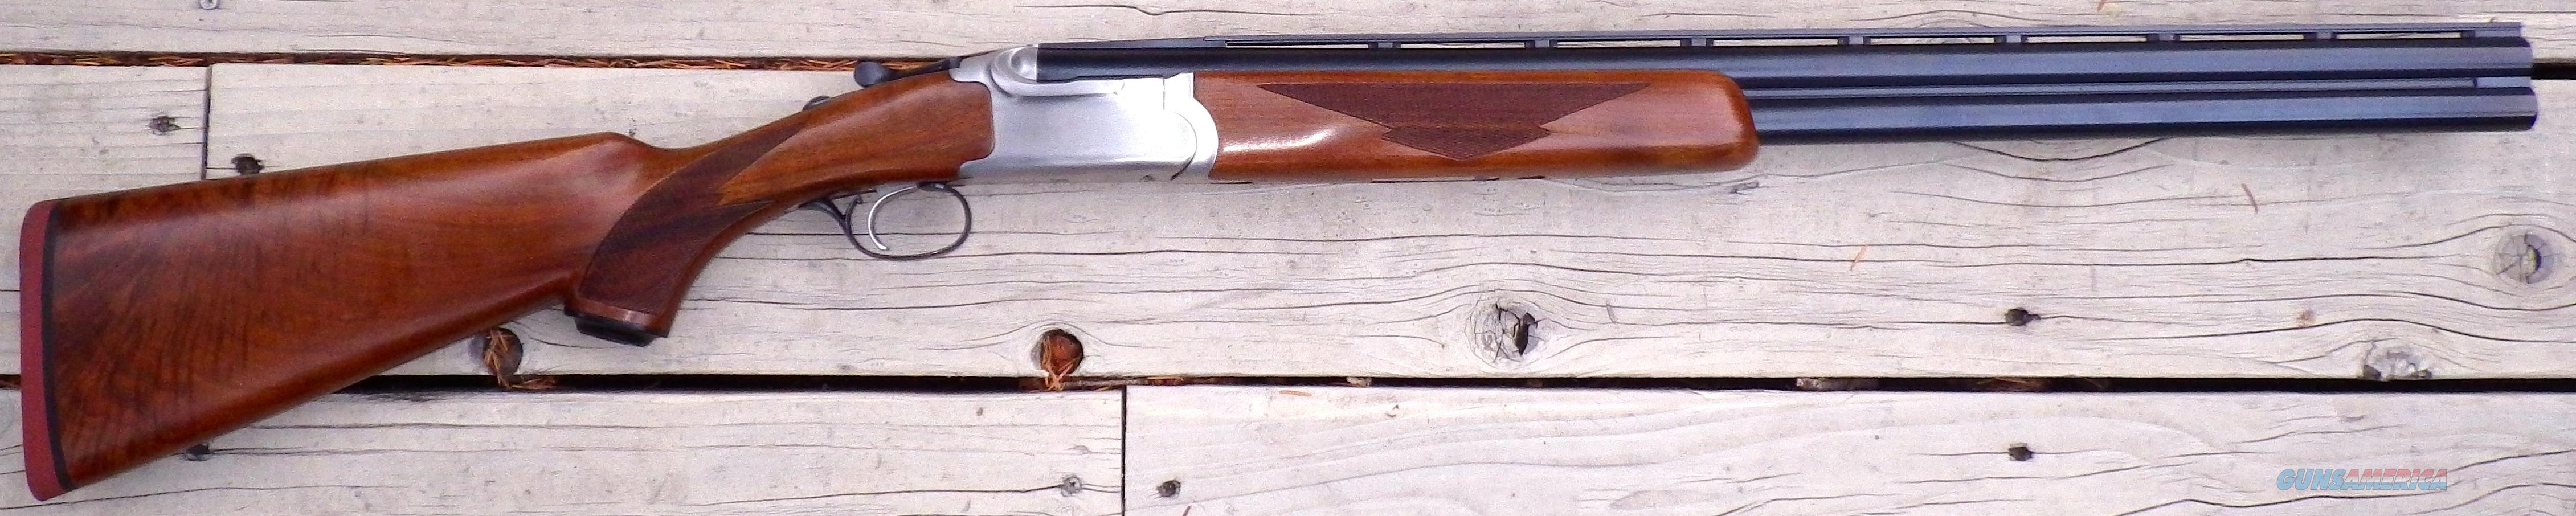 Ruger Red Label 12, 3-inch, 26-inch M/F, stainless  Guns > Shotguns > Ruger Shotguns > Hunting